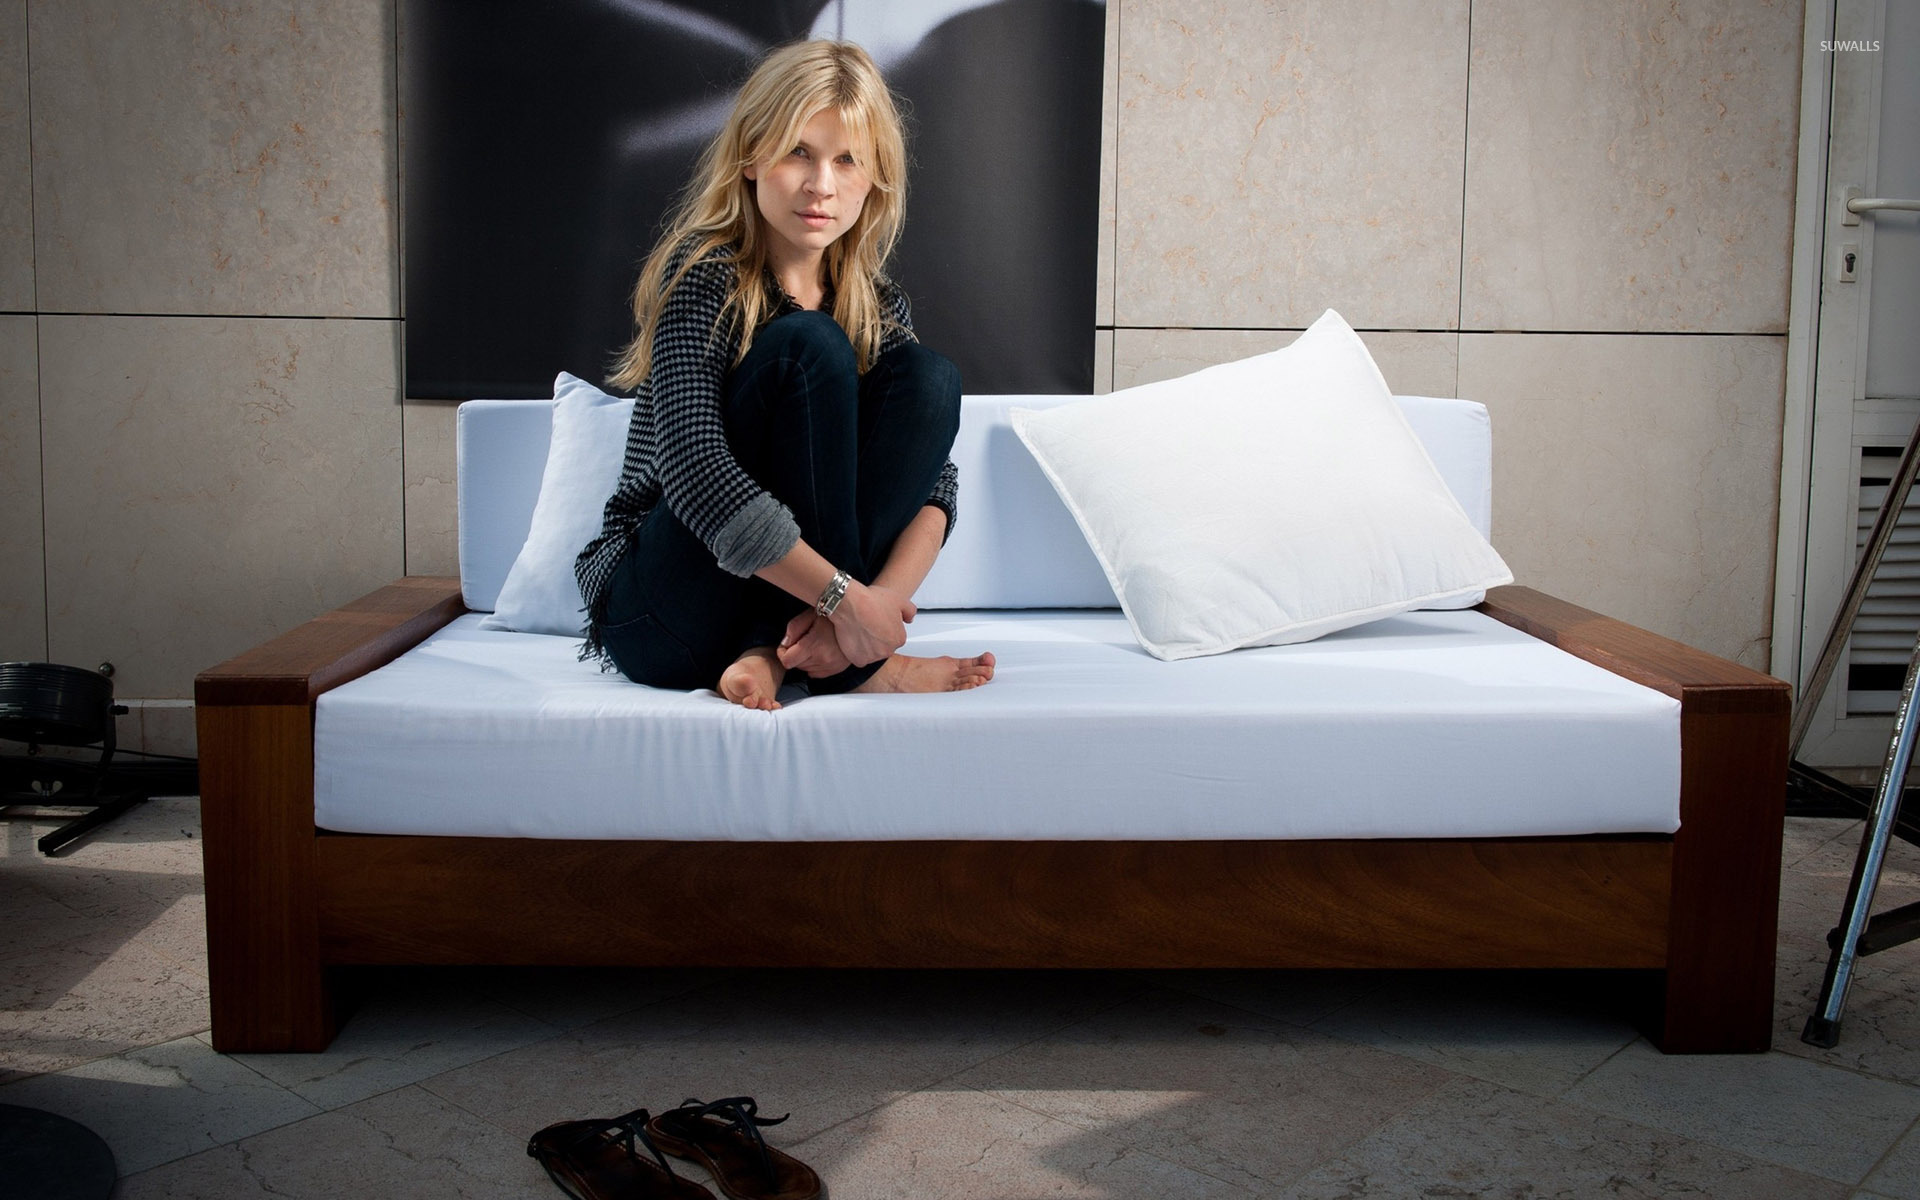 1920x1200 - Clemence Poesy Wallpapers 23